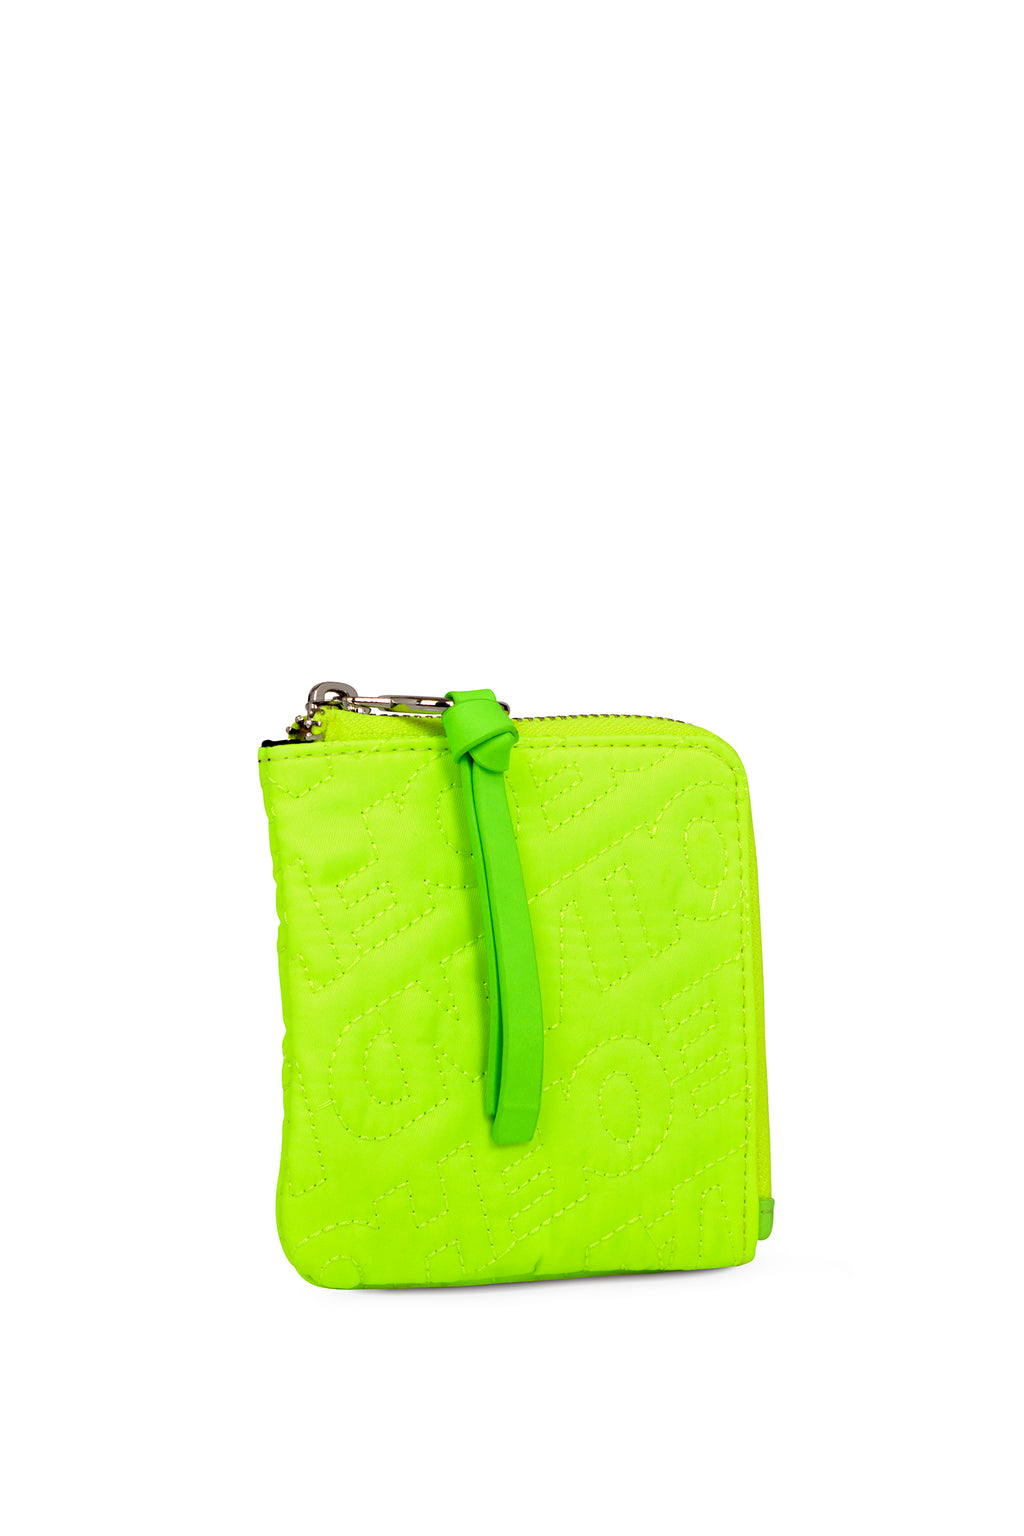 'HOH' Neon Green Embroidered Zip Wallet